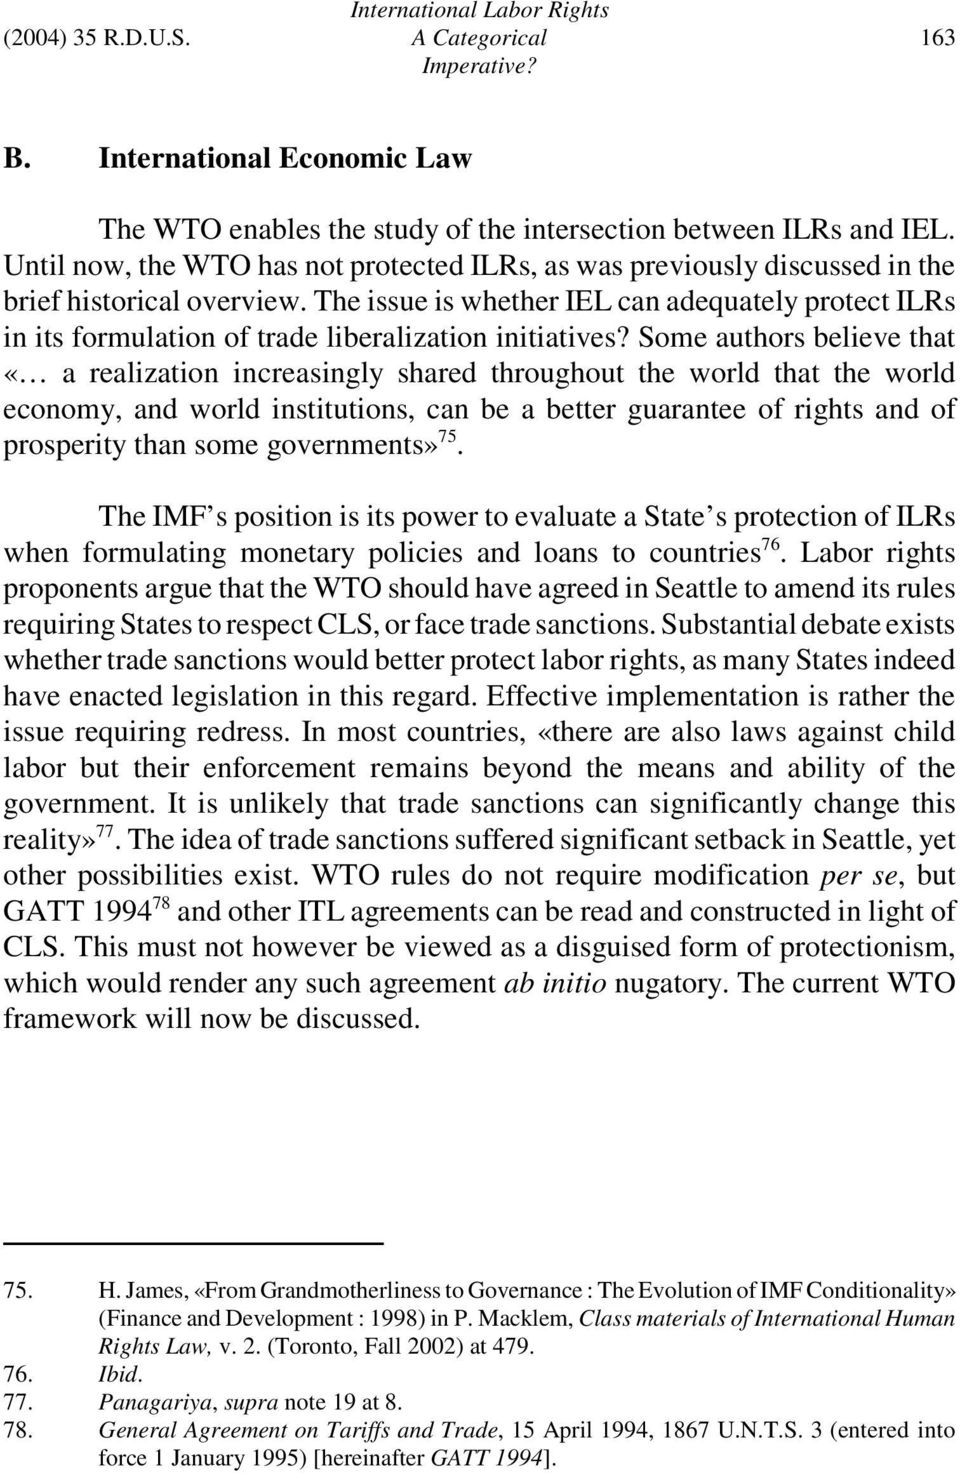 The issue is whether IEL can adequately protect ILRs in its formulation of trade liberalization initiatives?